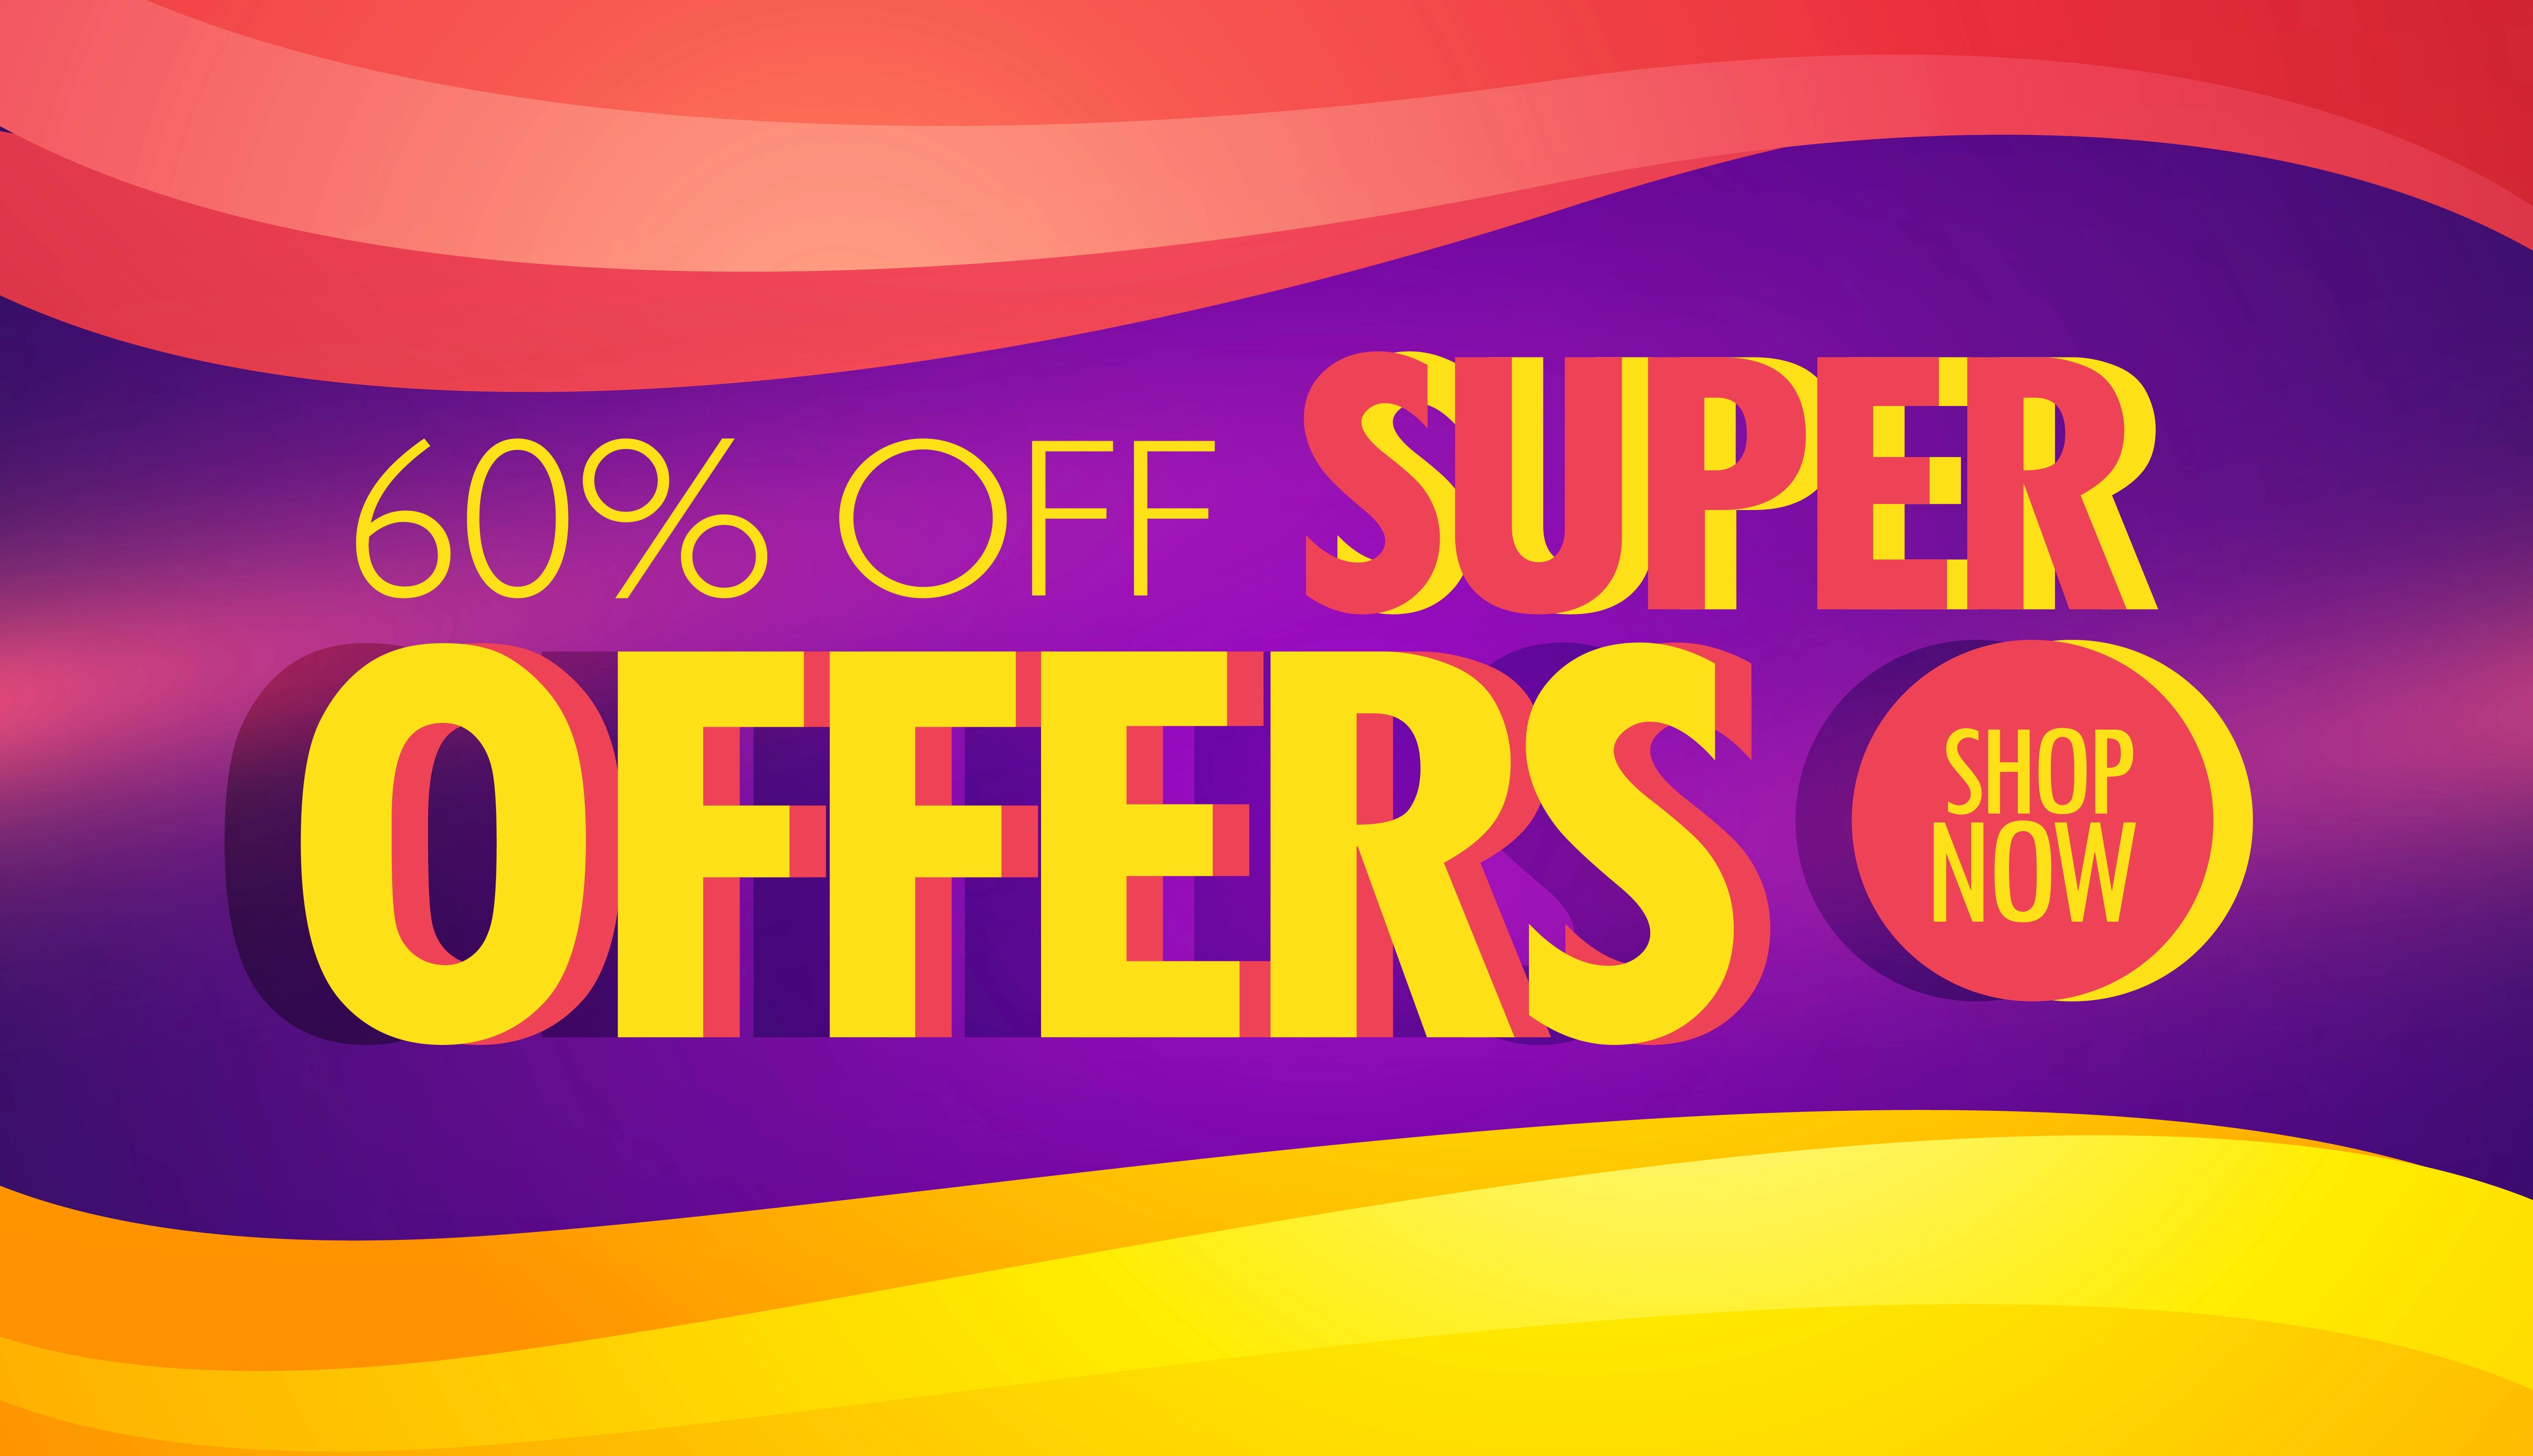 Super Offer Advertising Banner Template With Colorful Waves Download Free Vector Art Stock